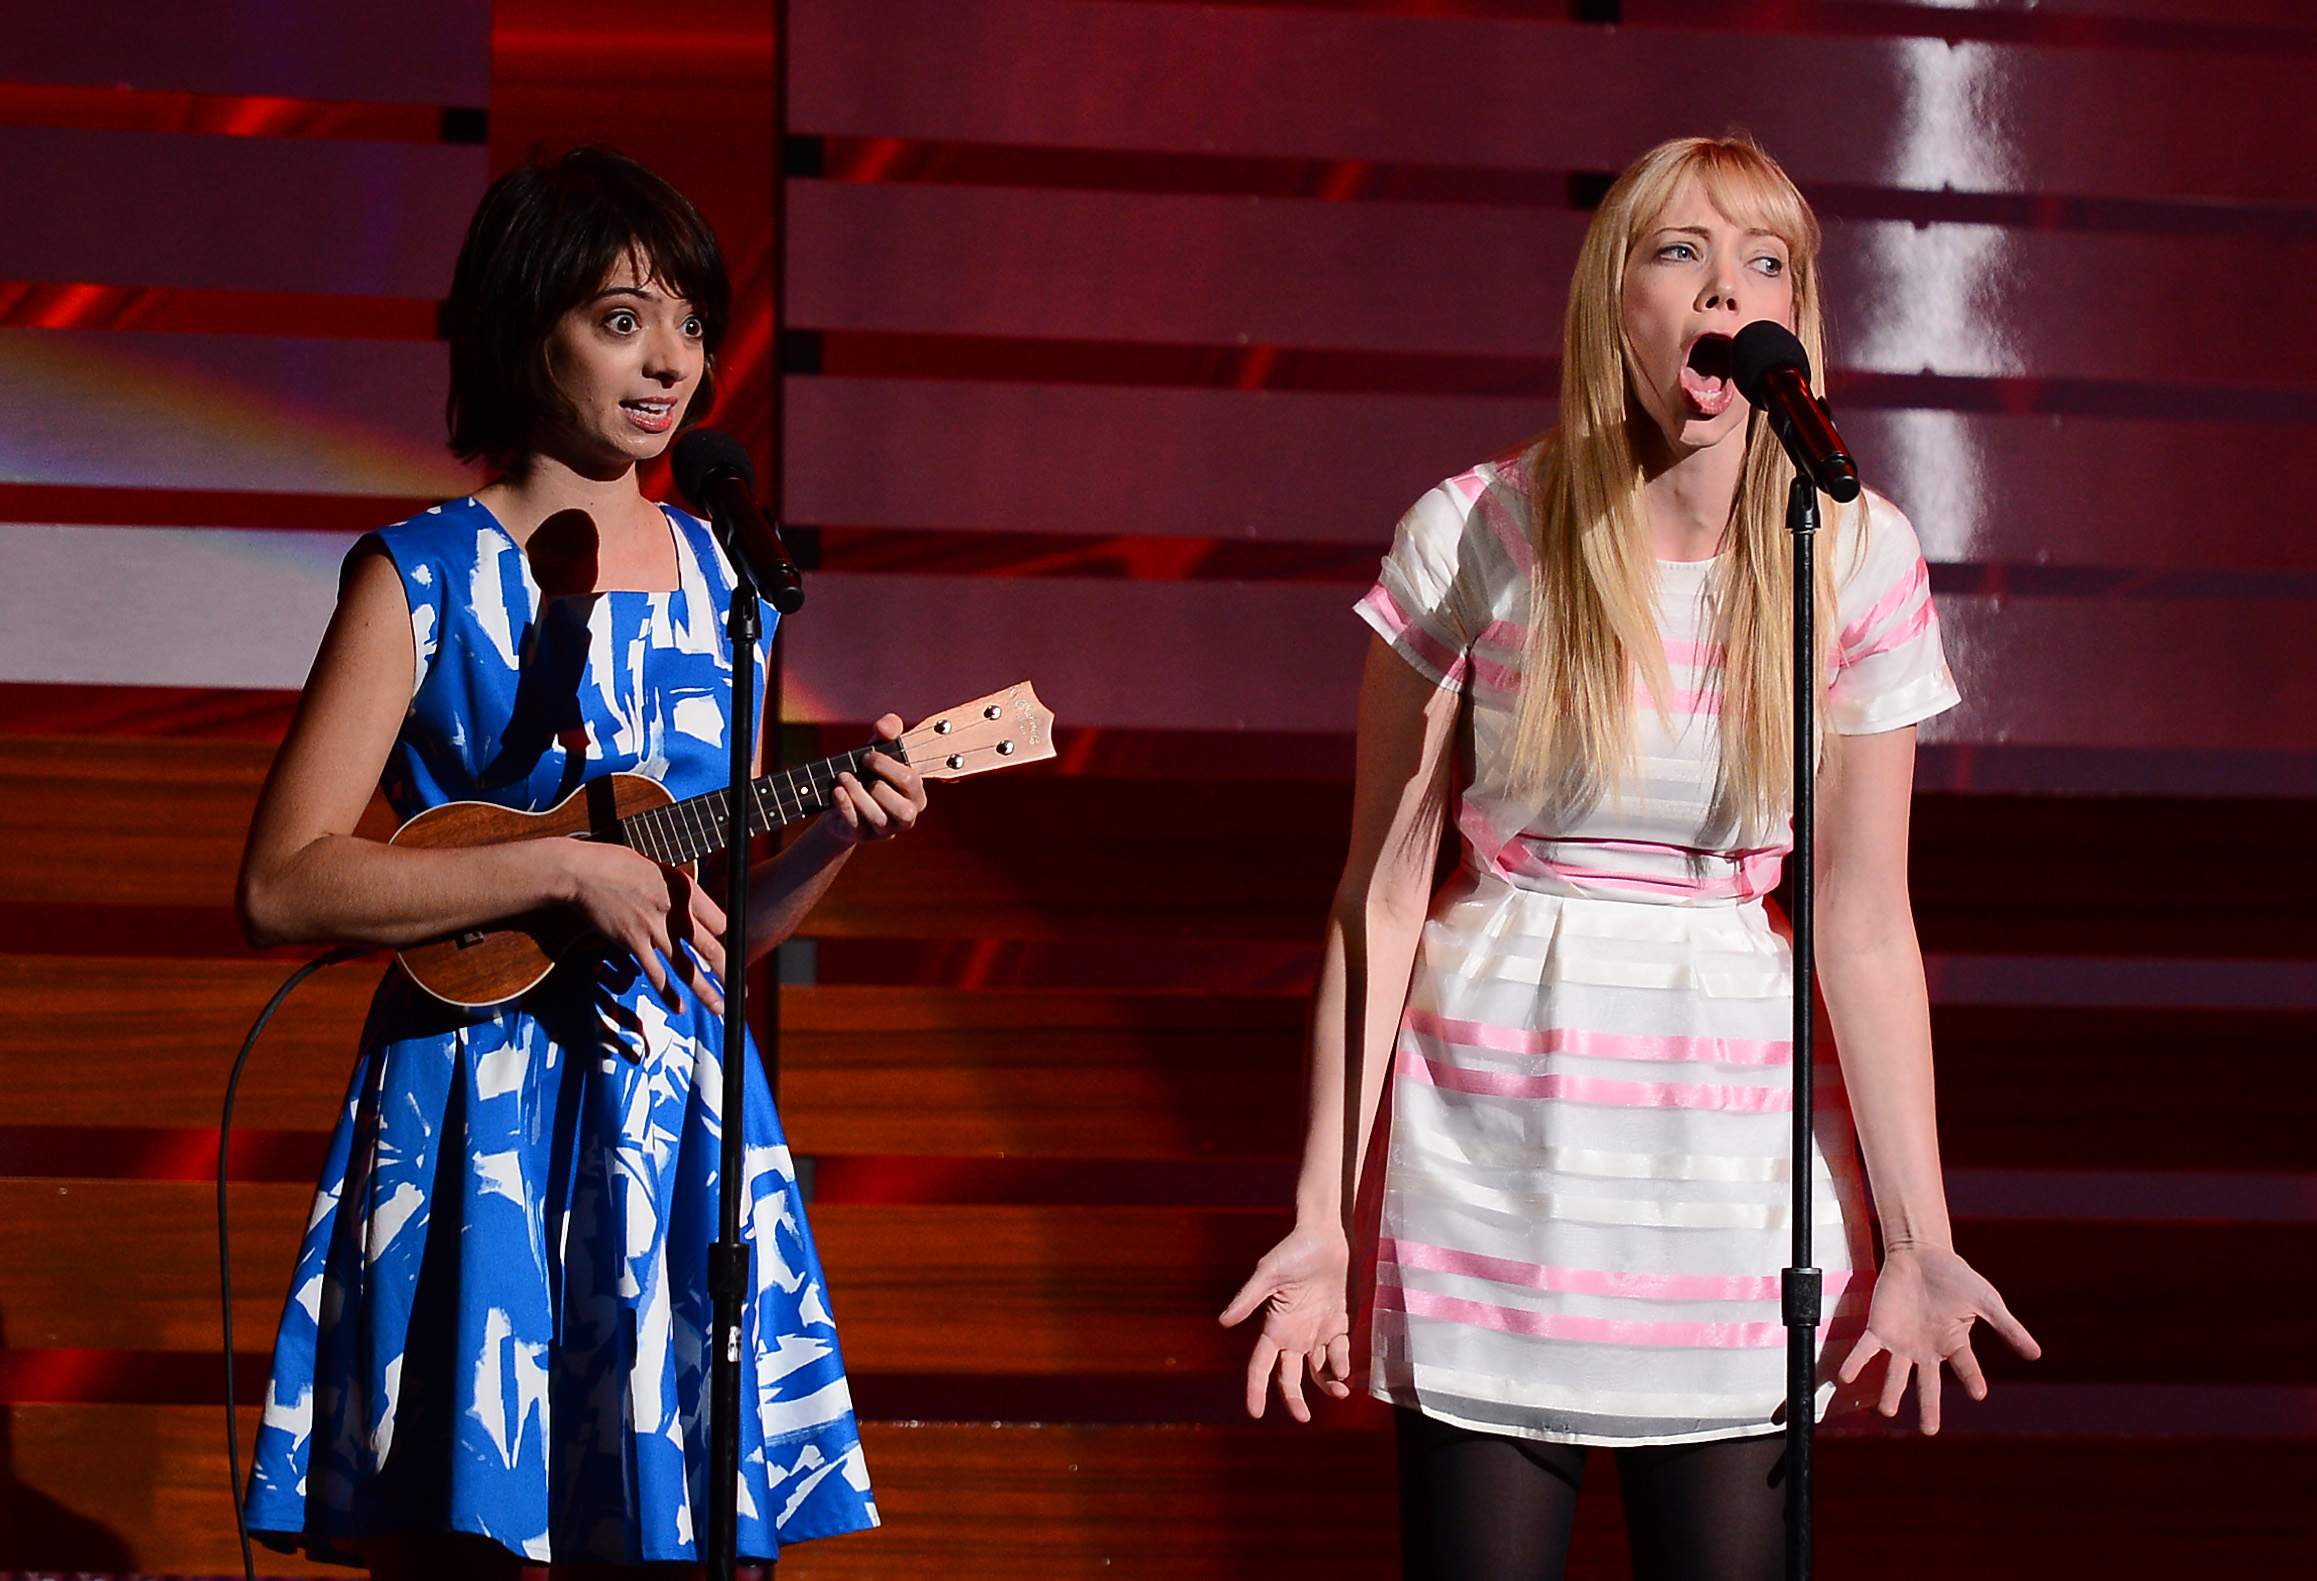 Garfunkel and Oates - Public Speaking & Appearances ...